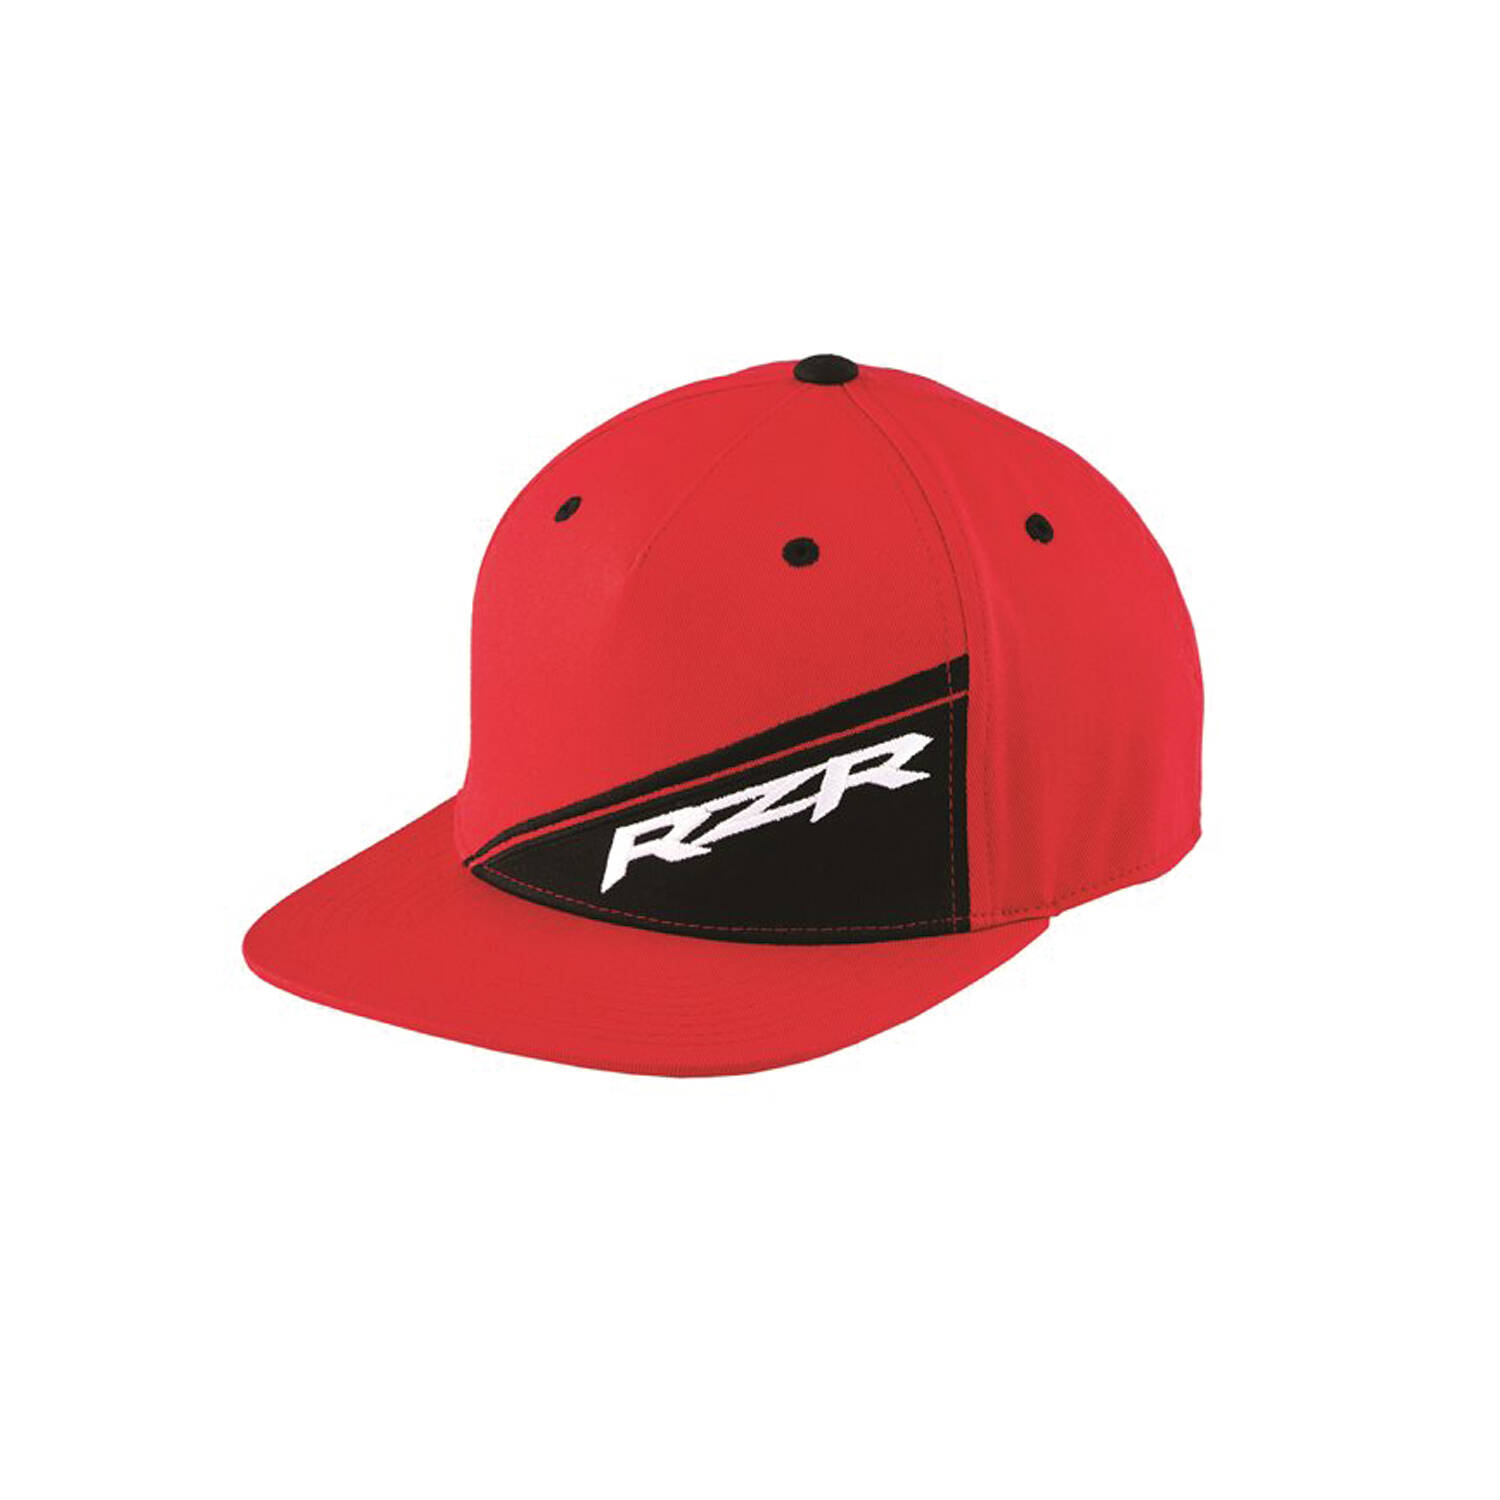 2590bb78339de Men s Flexfit Flatbill SoCal Hat with White RZR® Logo